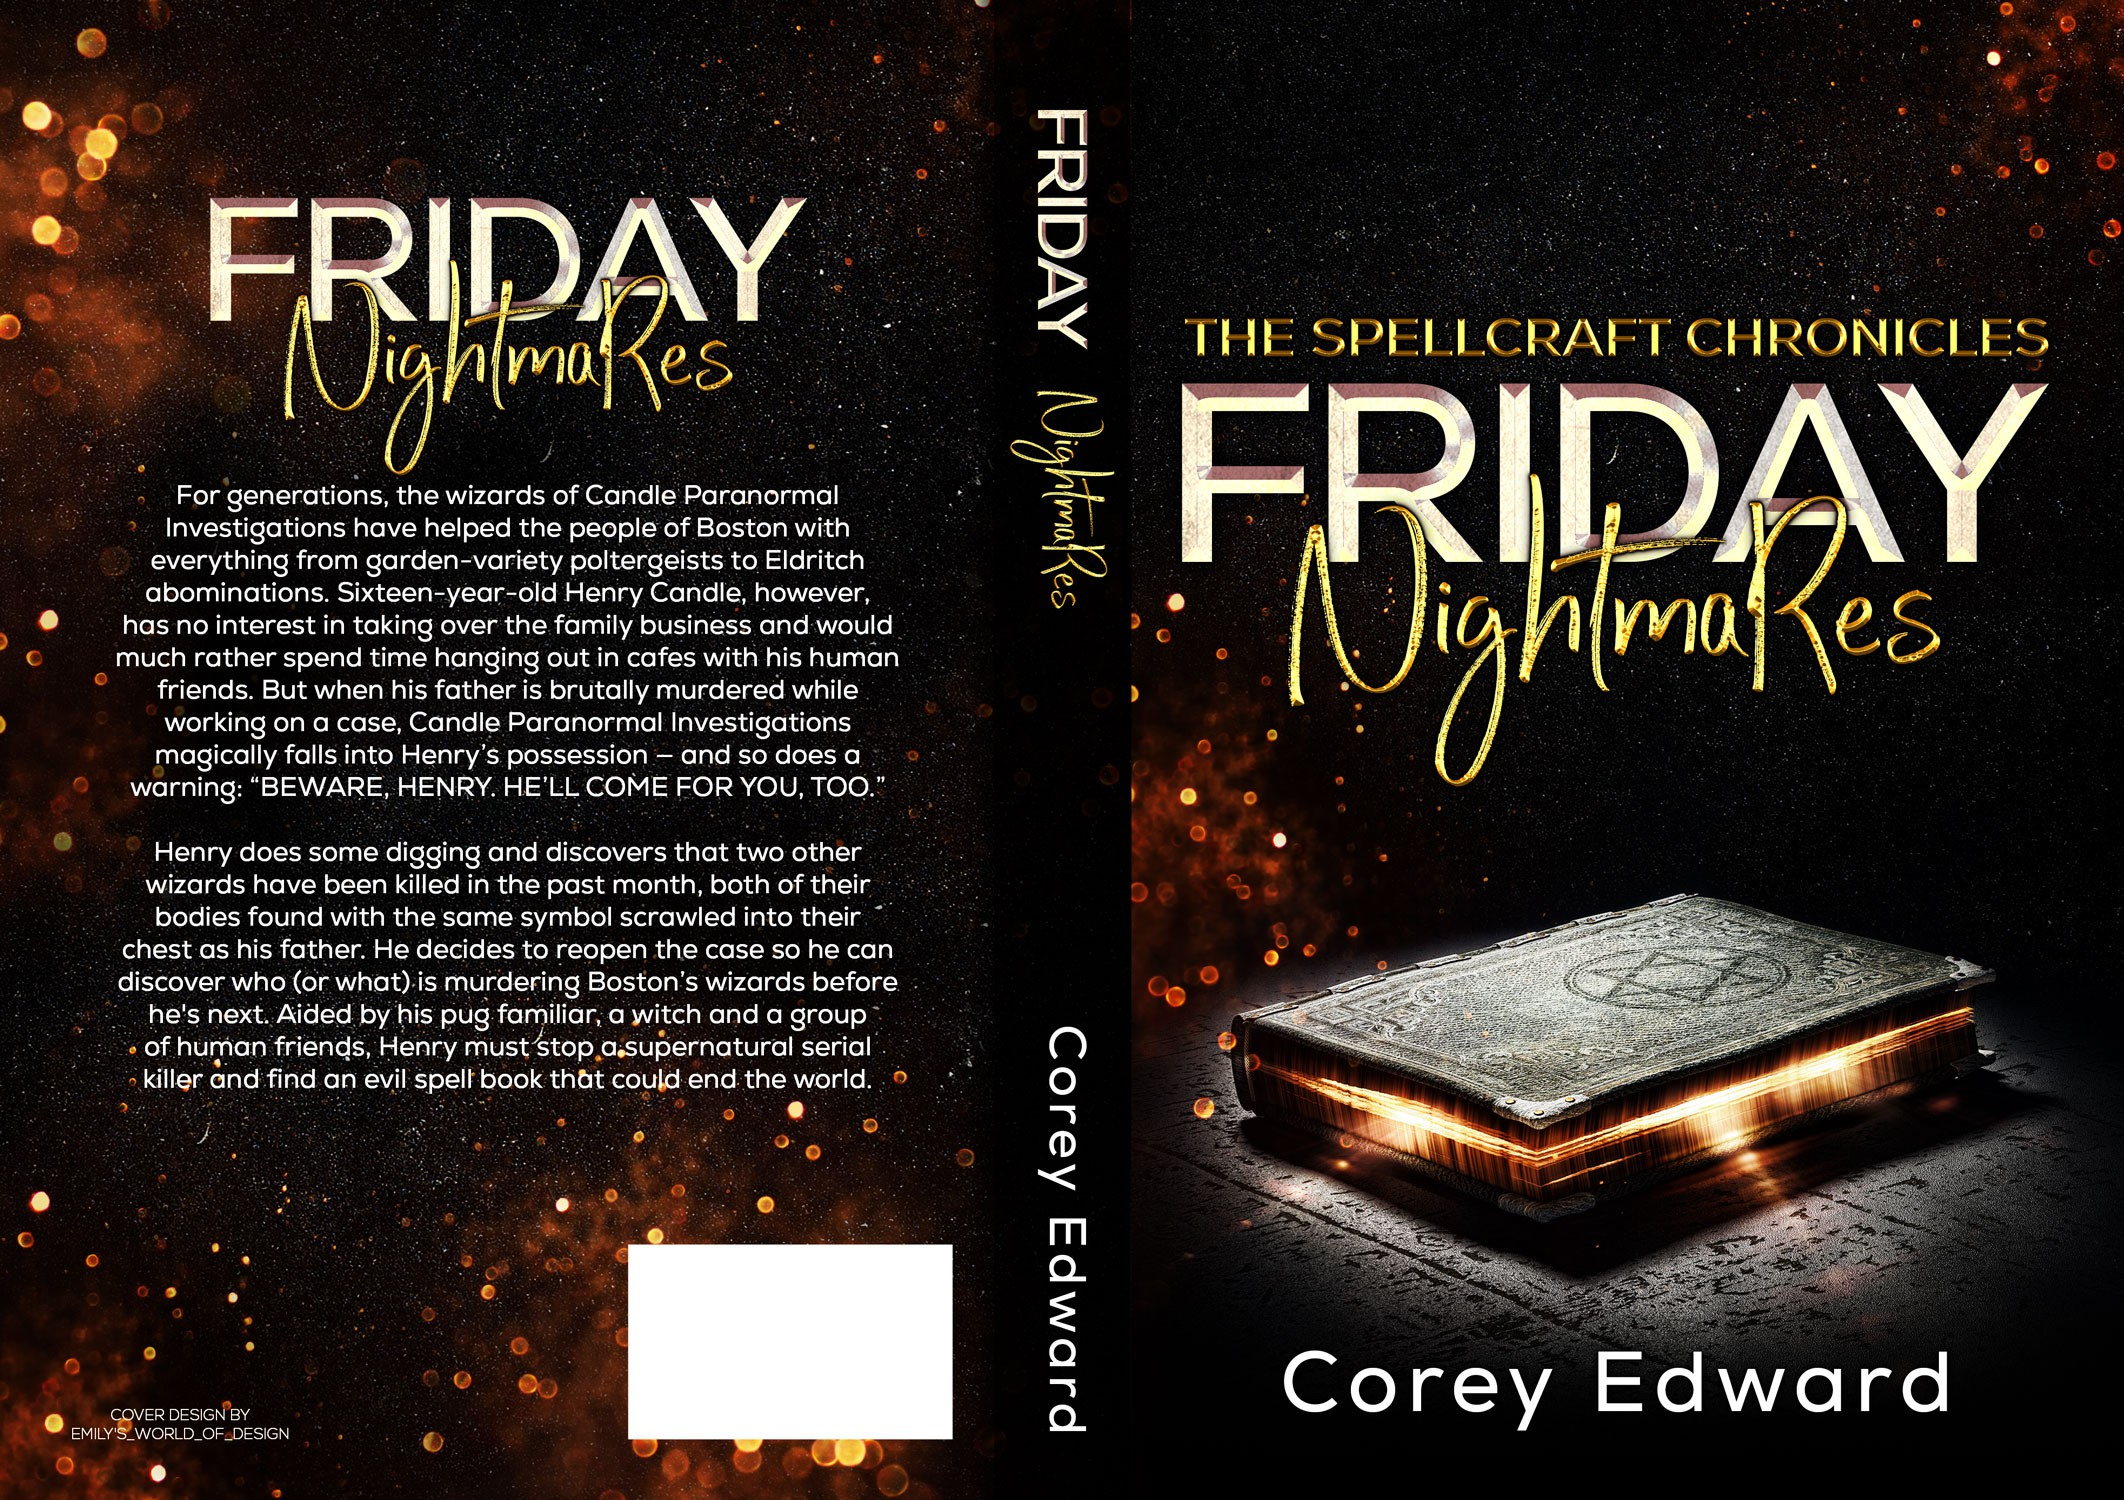 ebook and print cover design